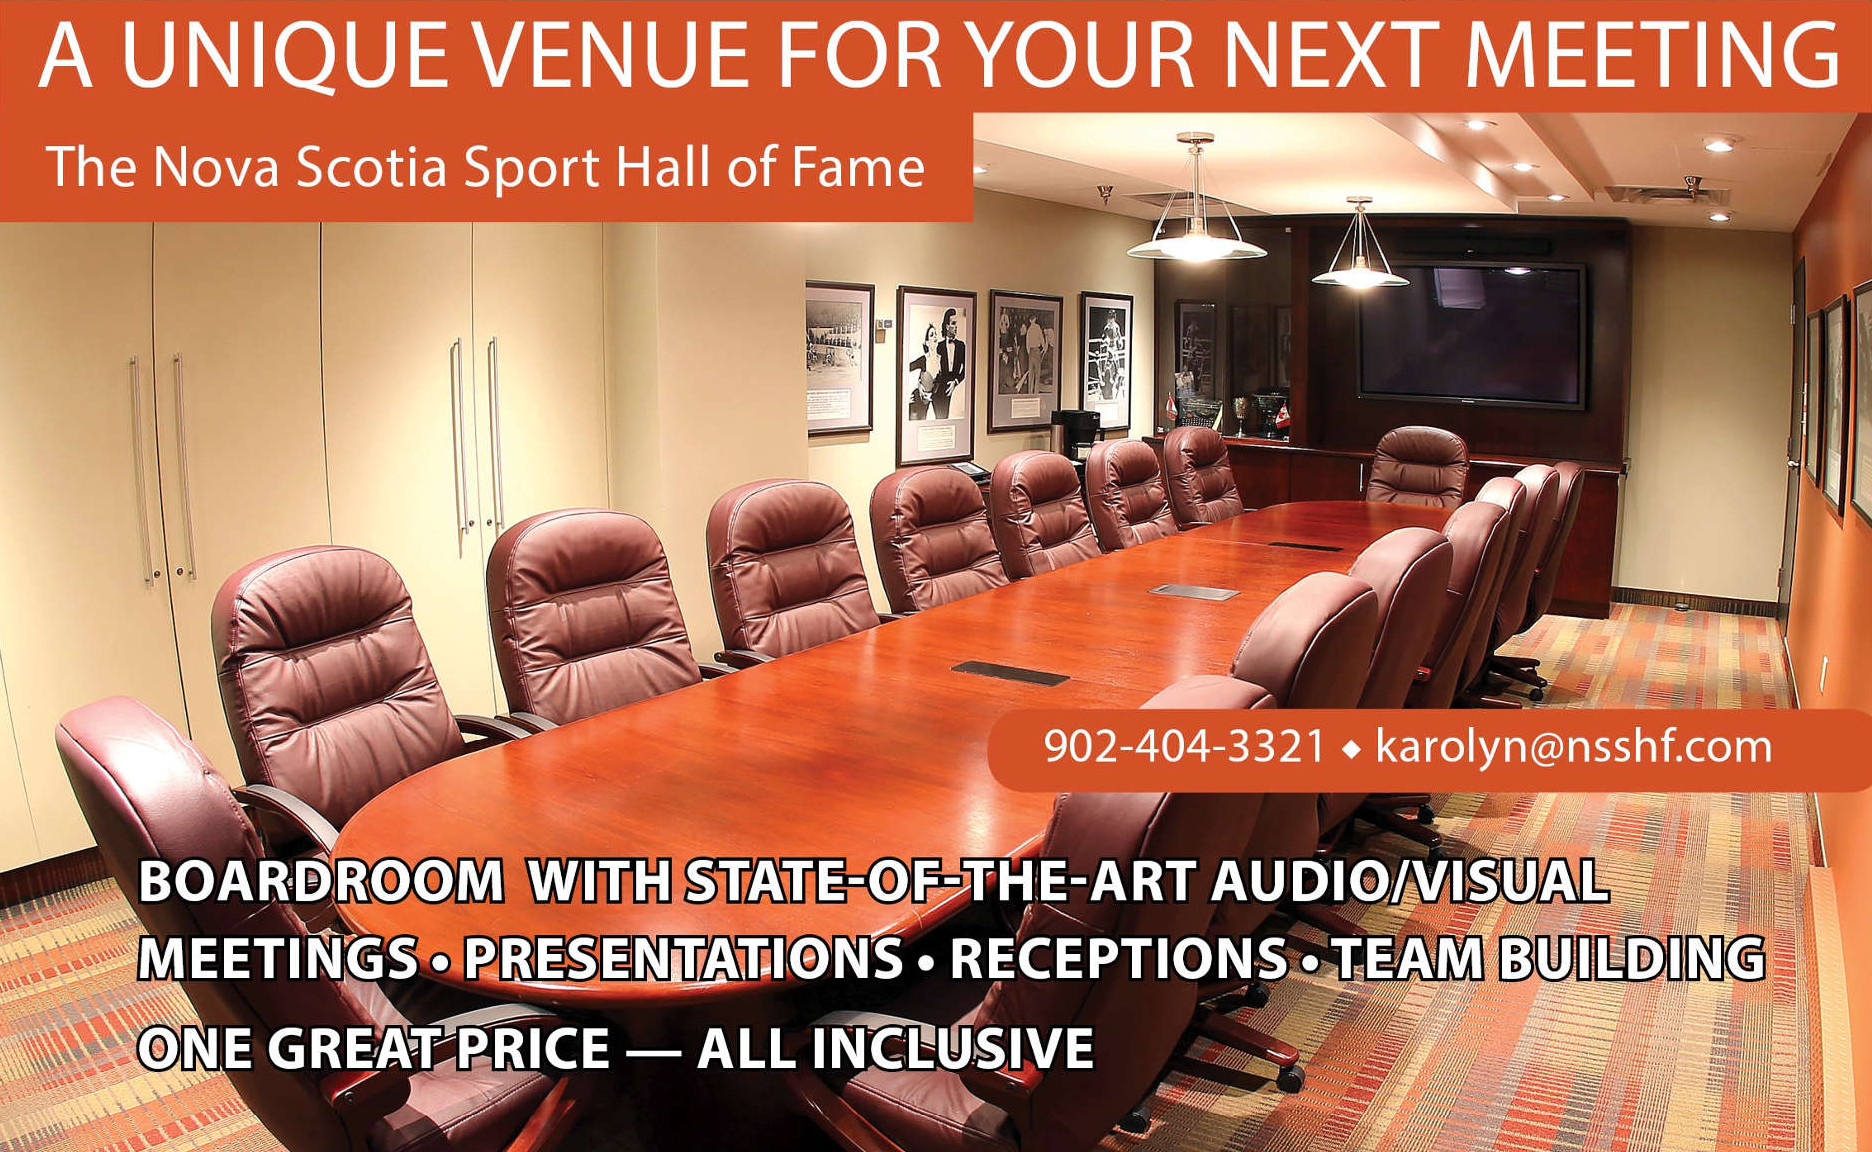 A unique venue for your next meeting. Boardroom with state-of-the-art audio/visual, meetings, presentations, receptions, team building. One great price - all inclusive.